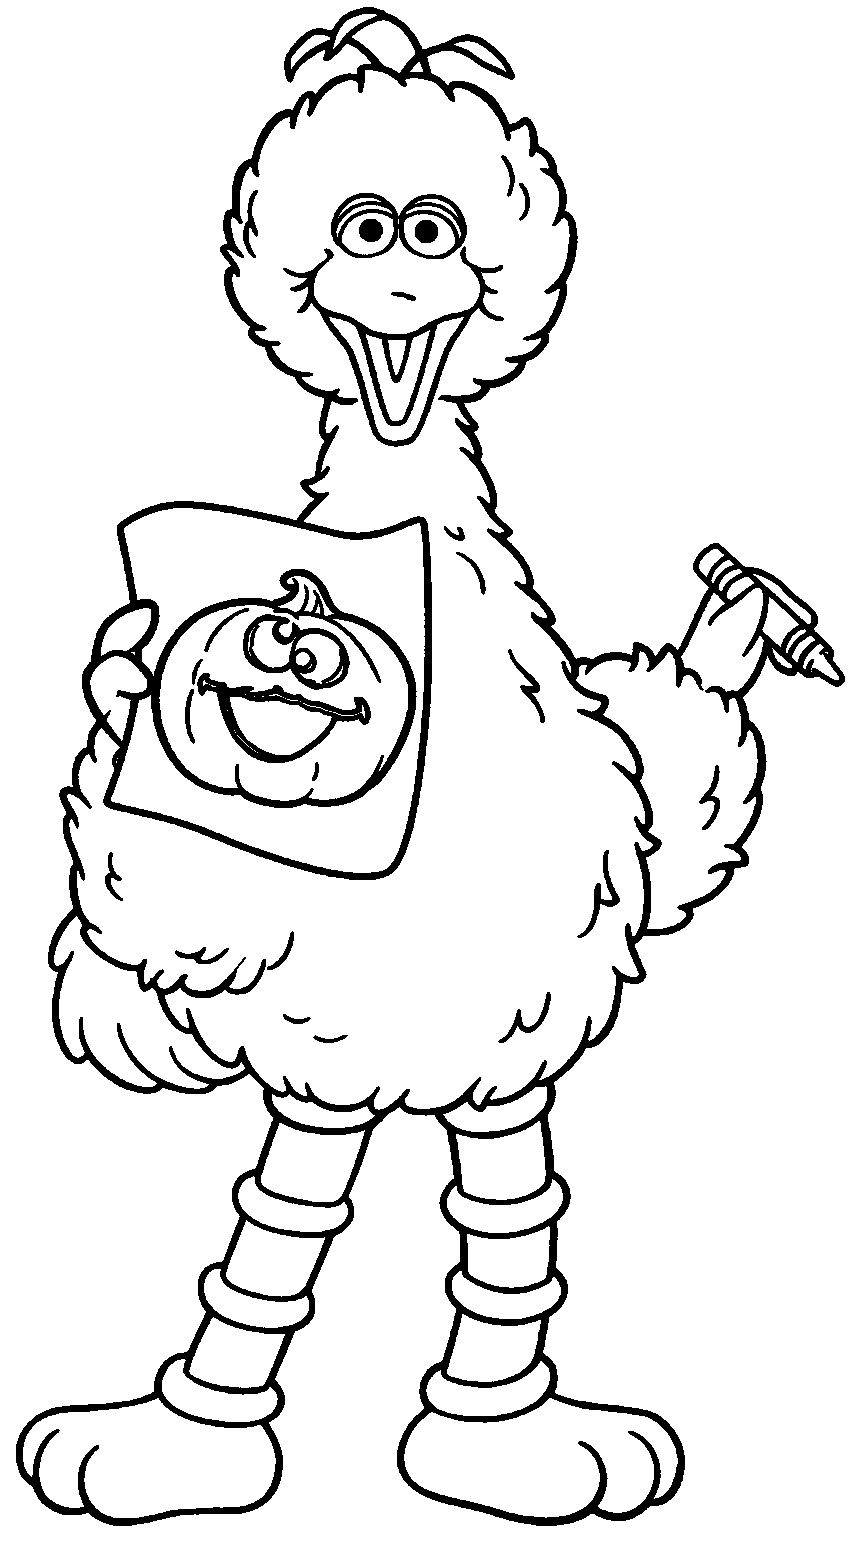 big bird draw sesame street coloring pages pinterest big